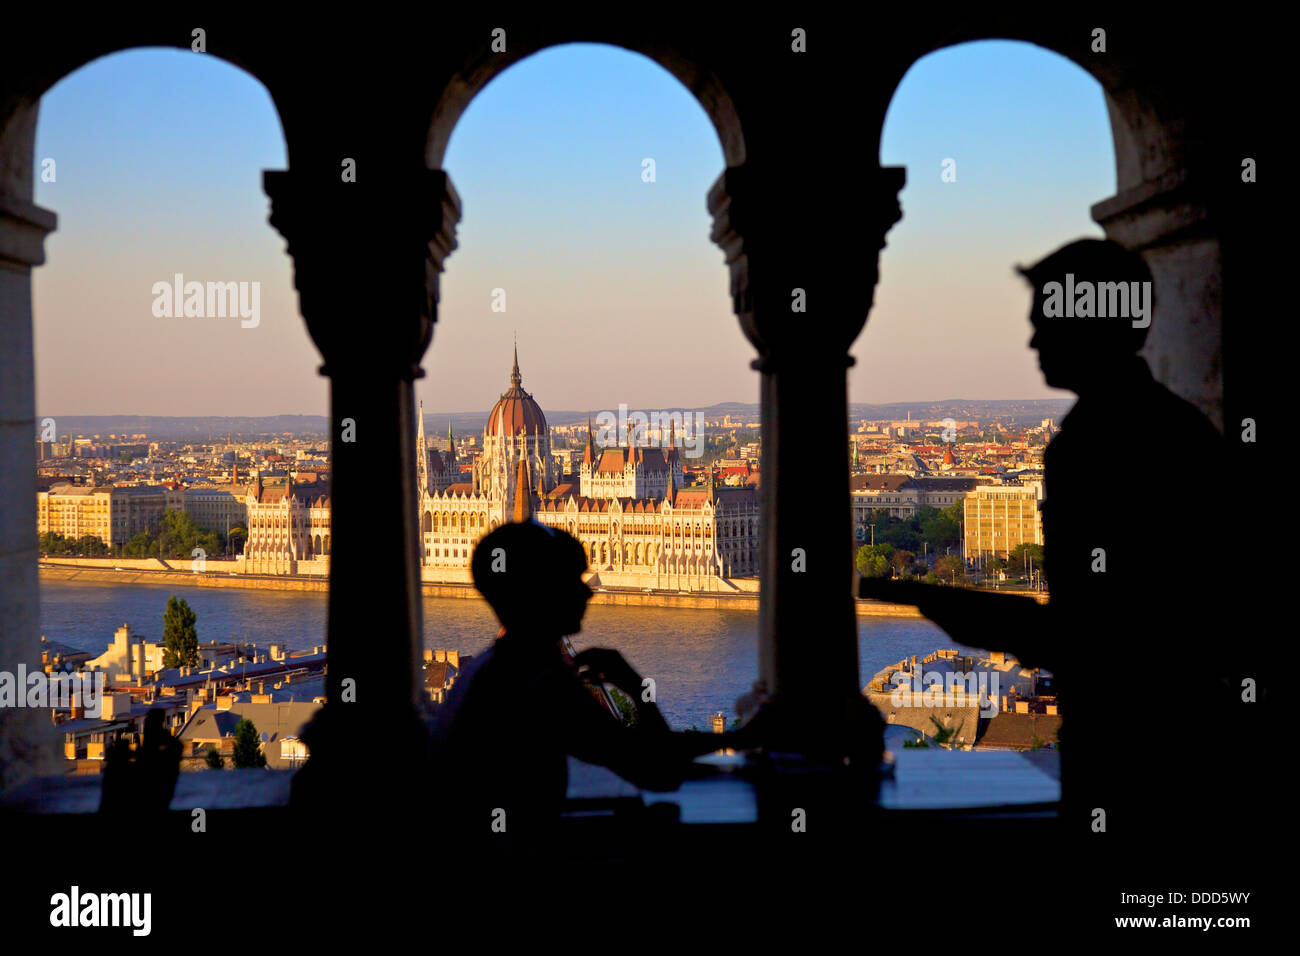 Waiter and Customer at Cafe, Fisherman's Bastion, Budapest, Hungary - Stock Image